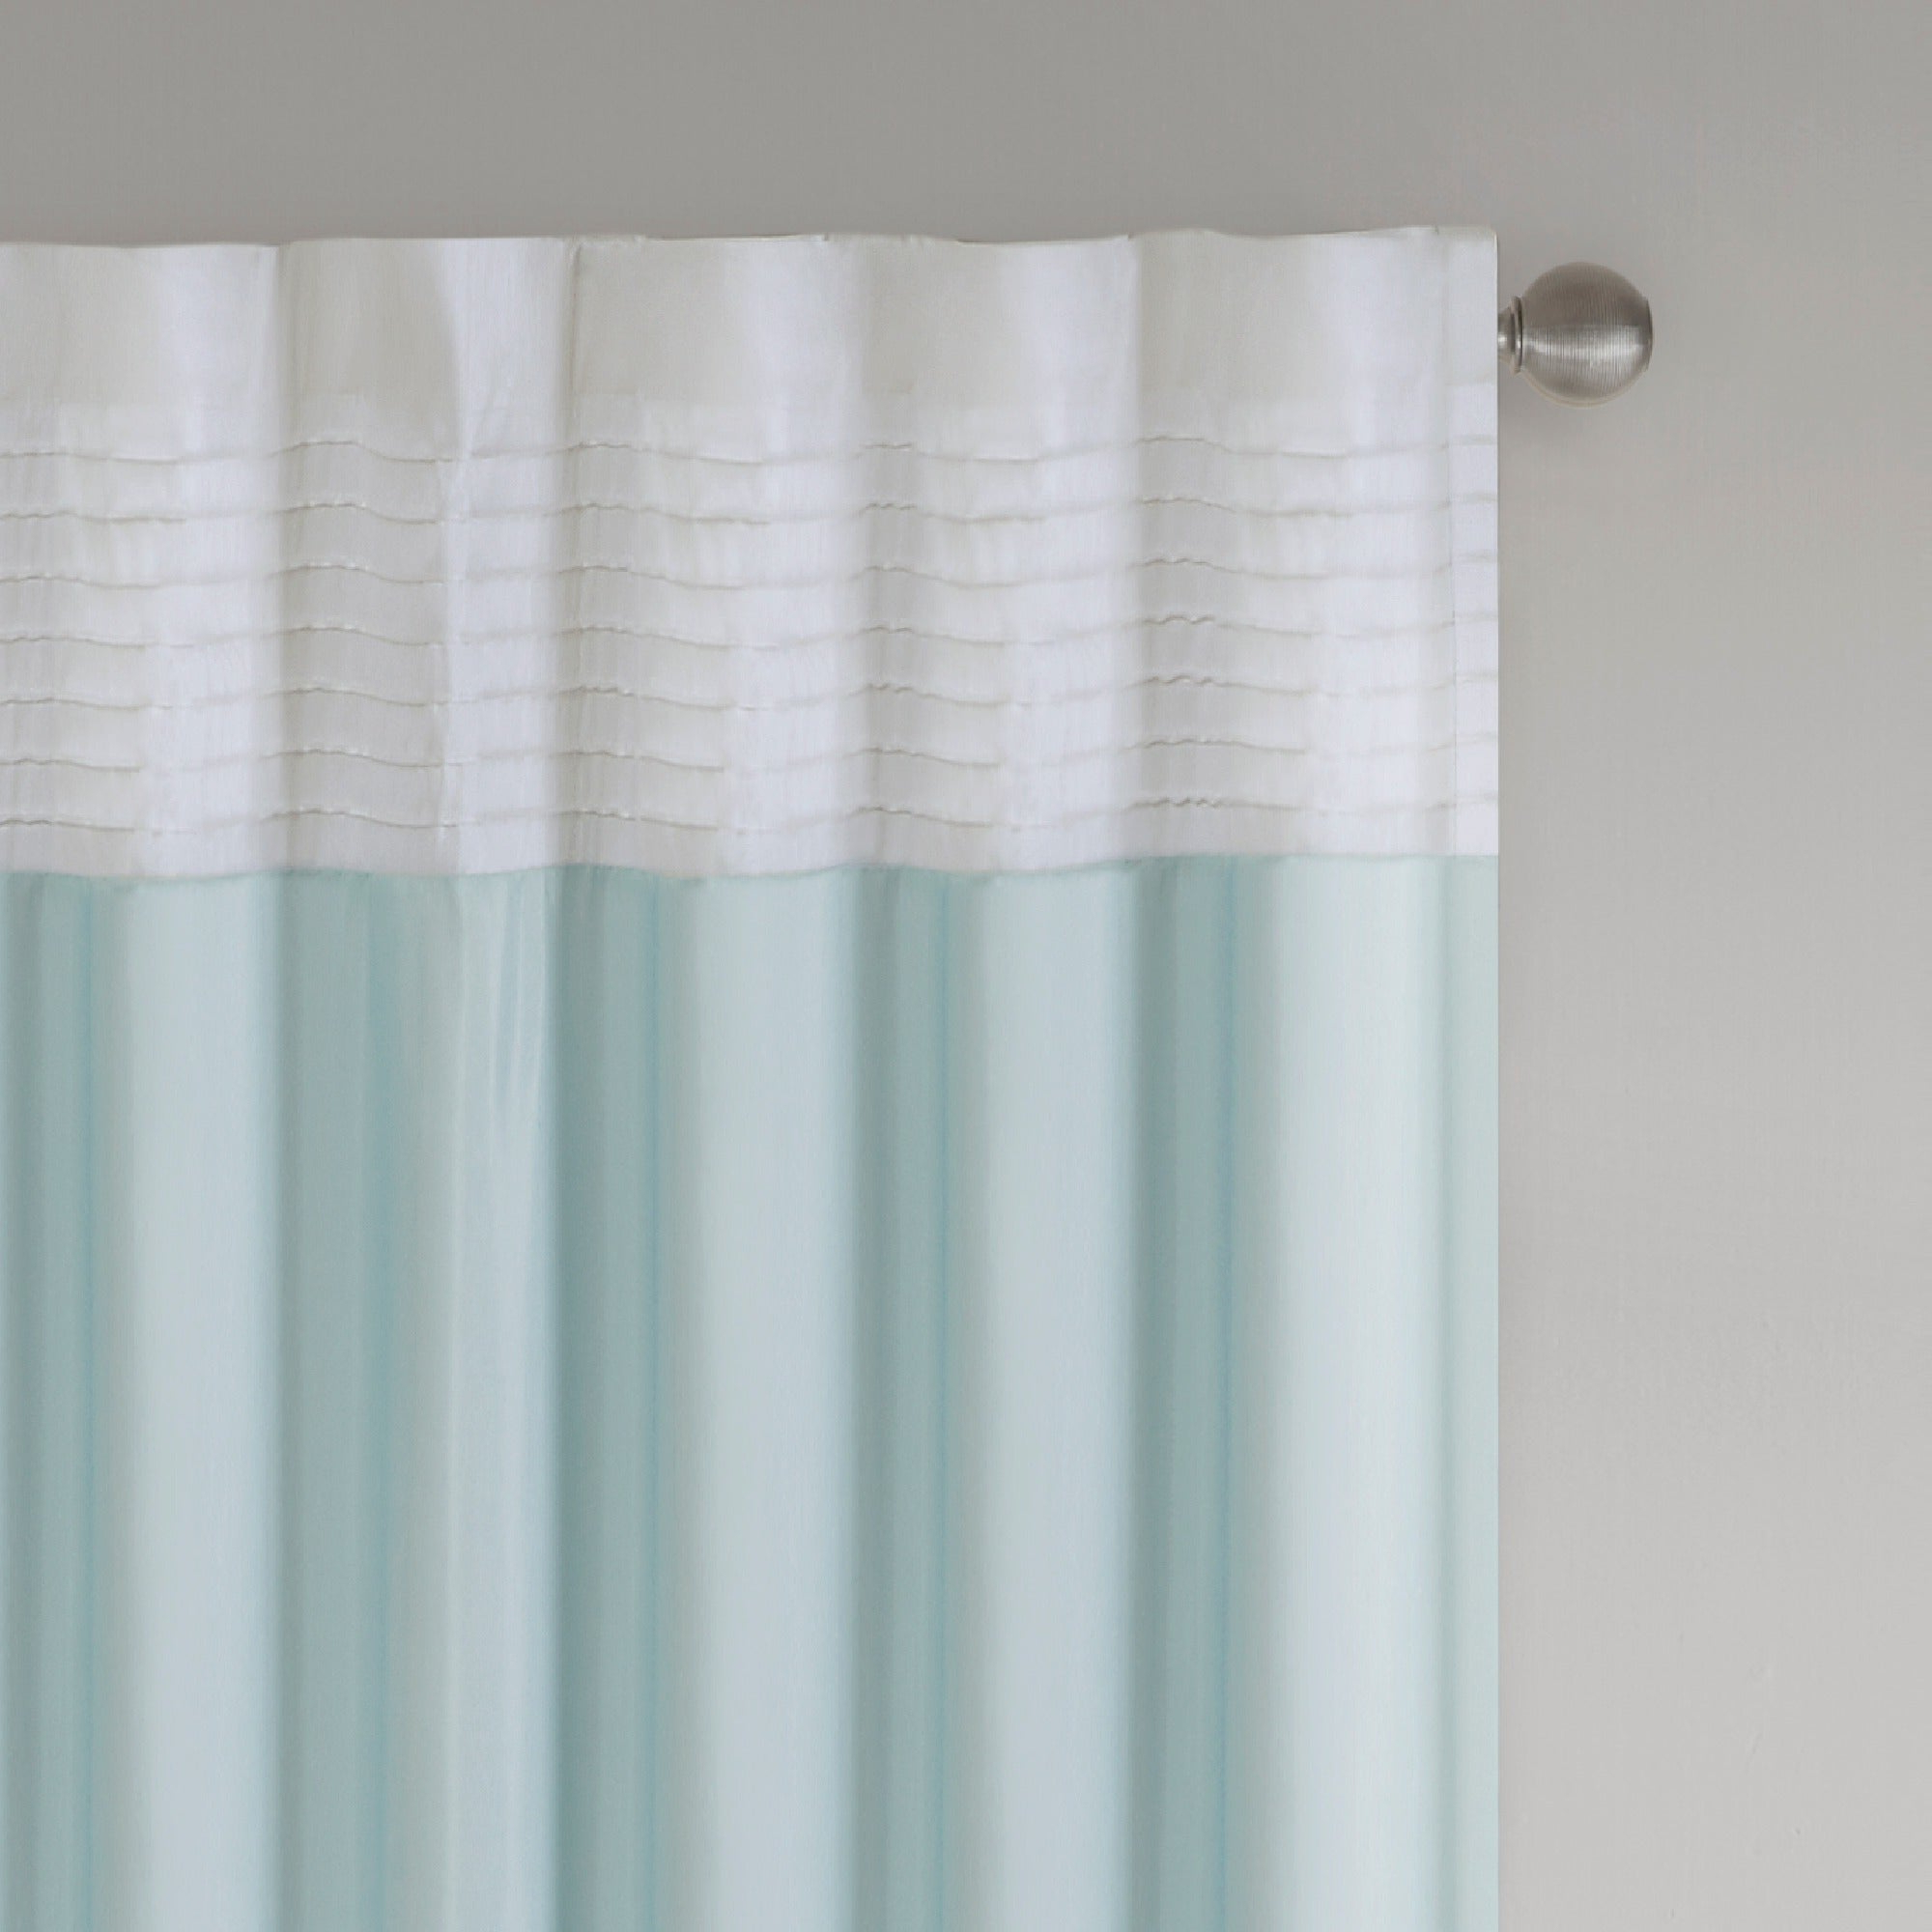 Madison Park Chester Polyoni Pintuck Curtain Panel – 50 X 84 With Regard To Well Known Chester Polyoni Pintuck Curtain Panels (View 15 of 20)